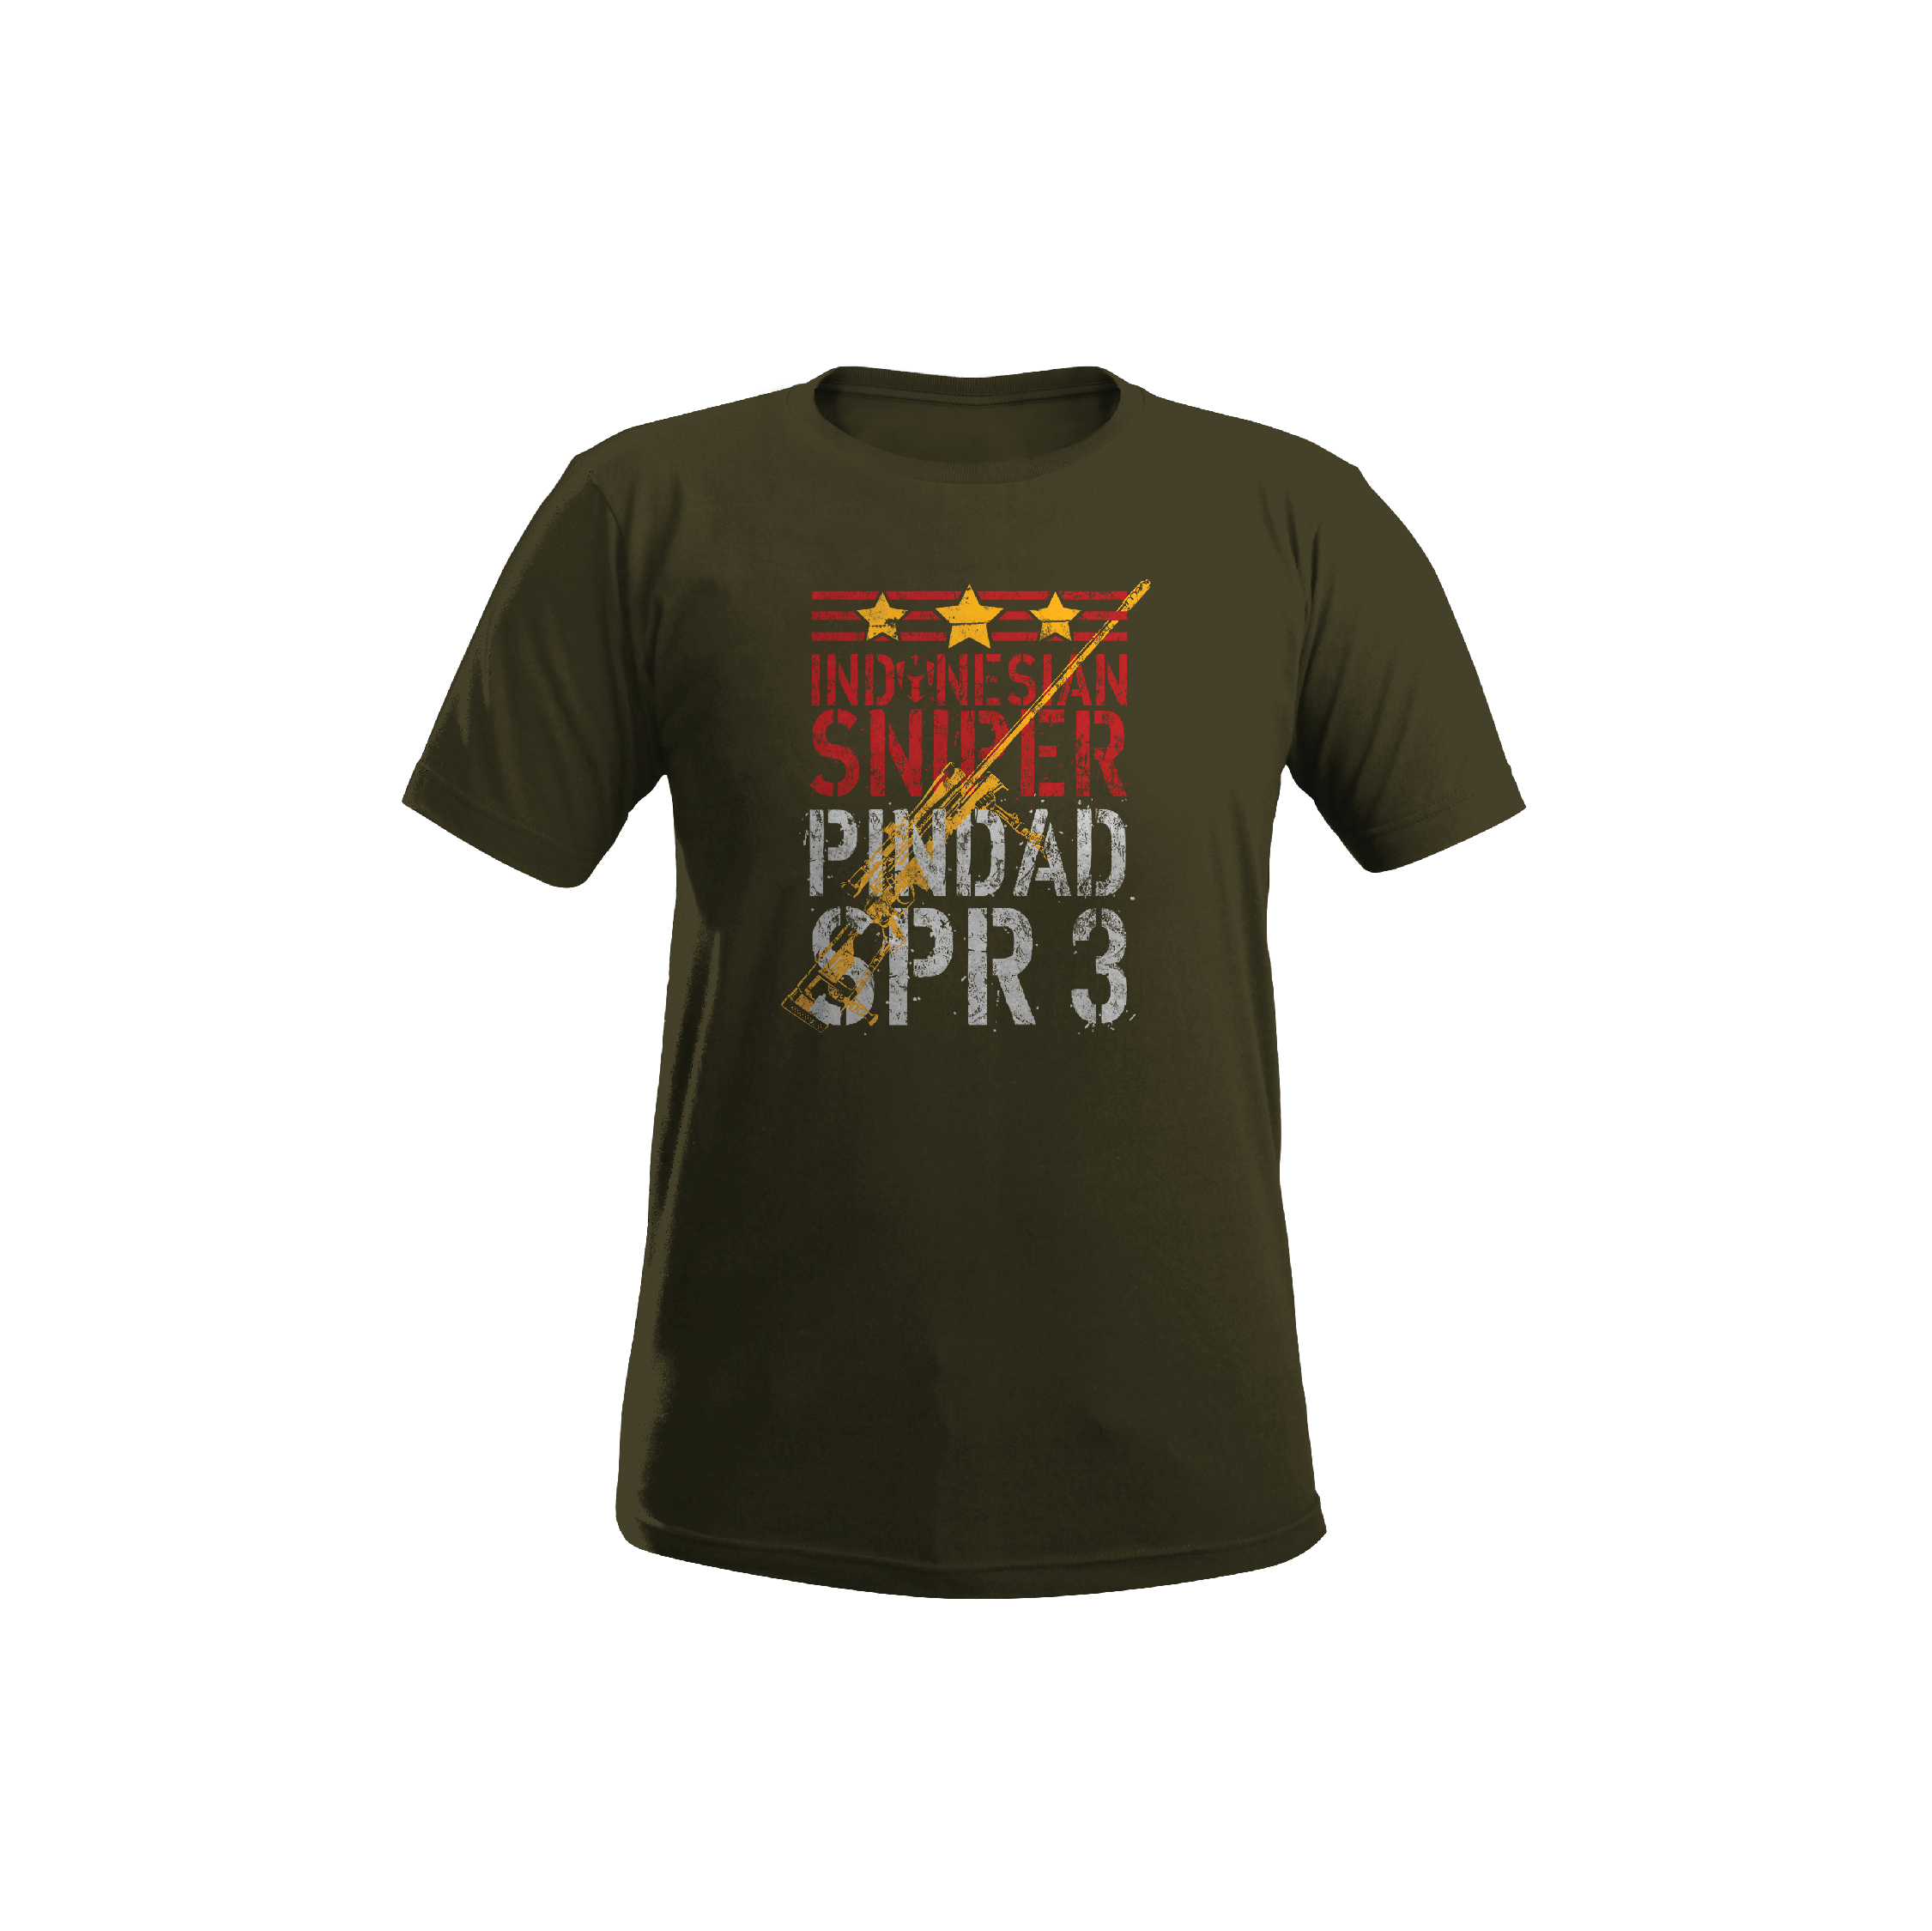 Indonesian Sniper Pindad ISP SPR 3 T-Shirt